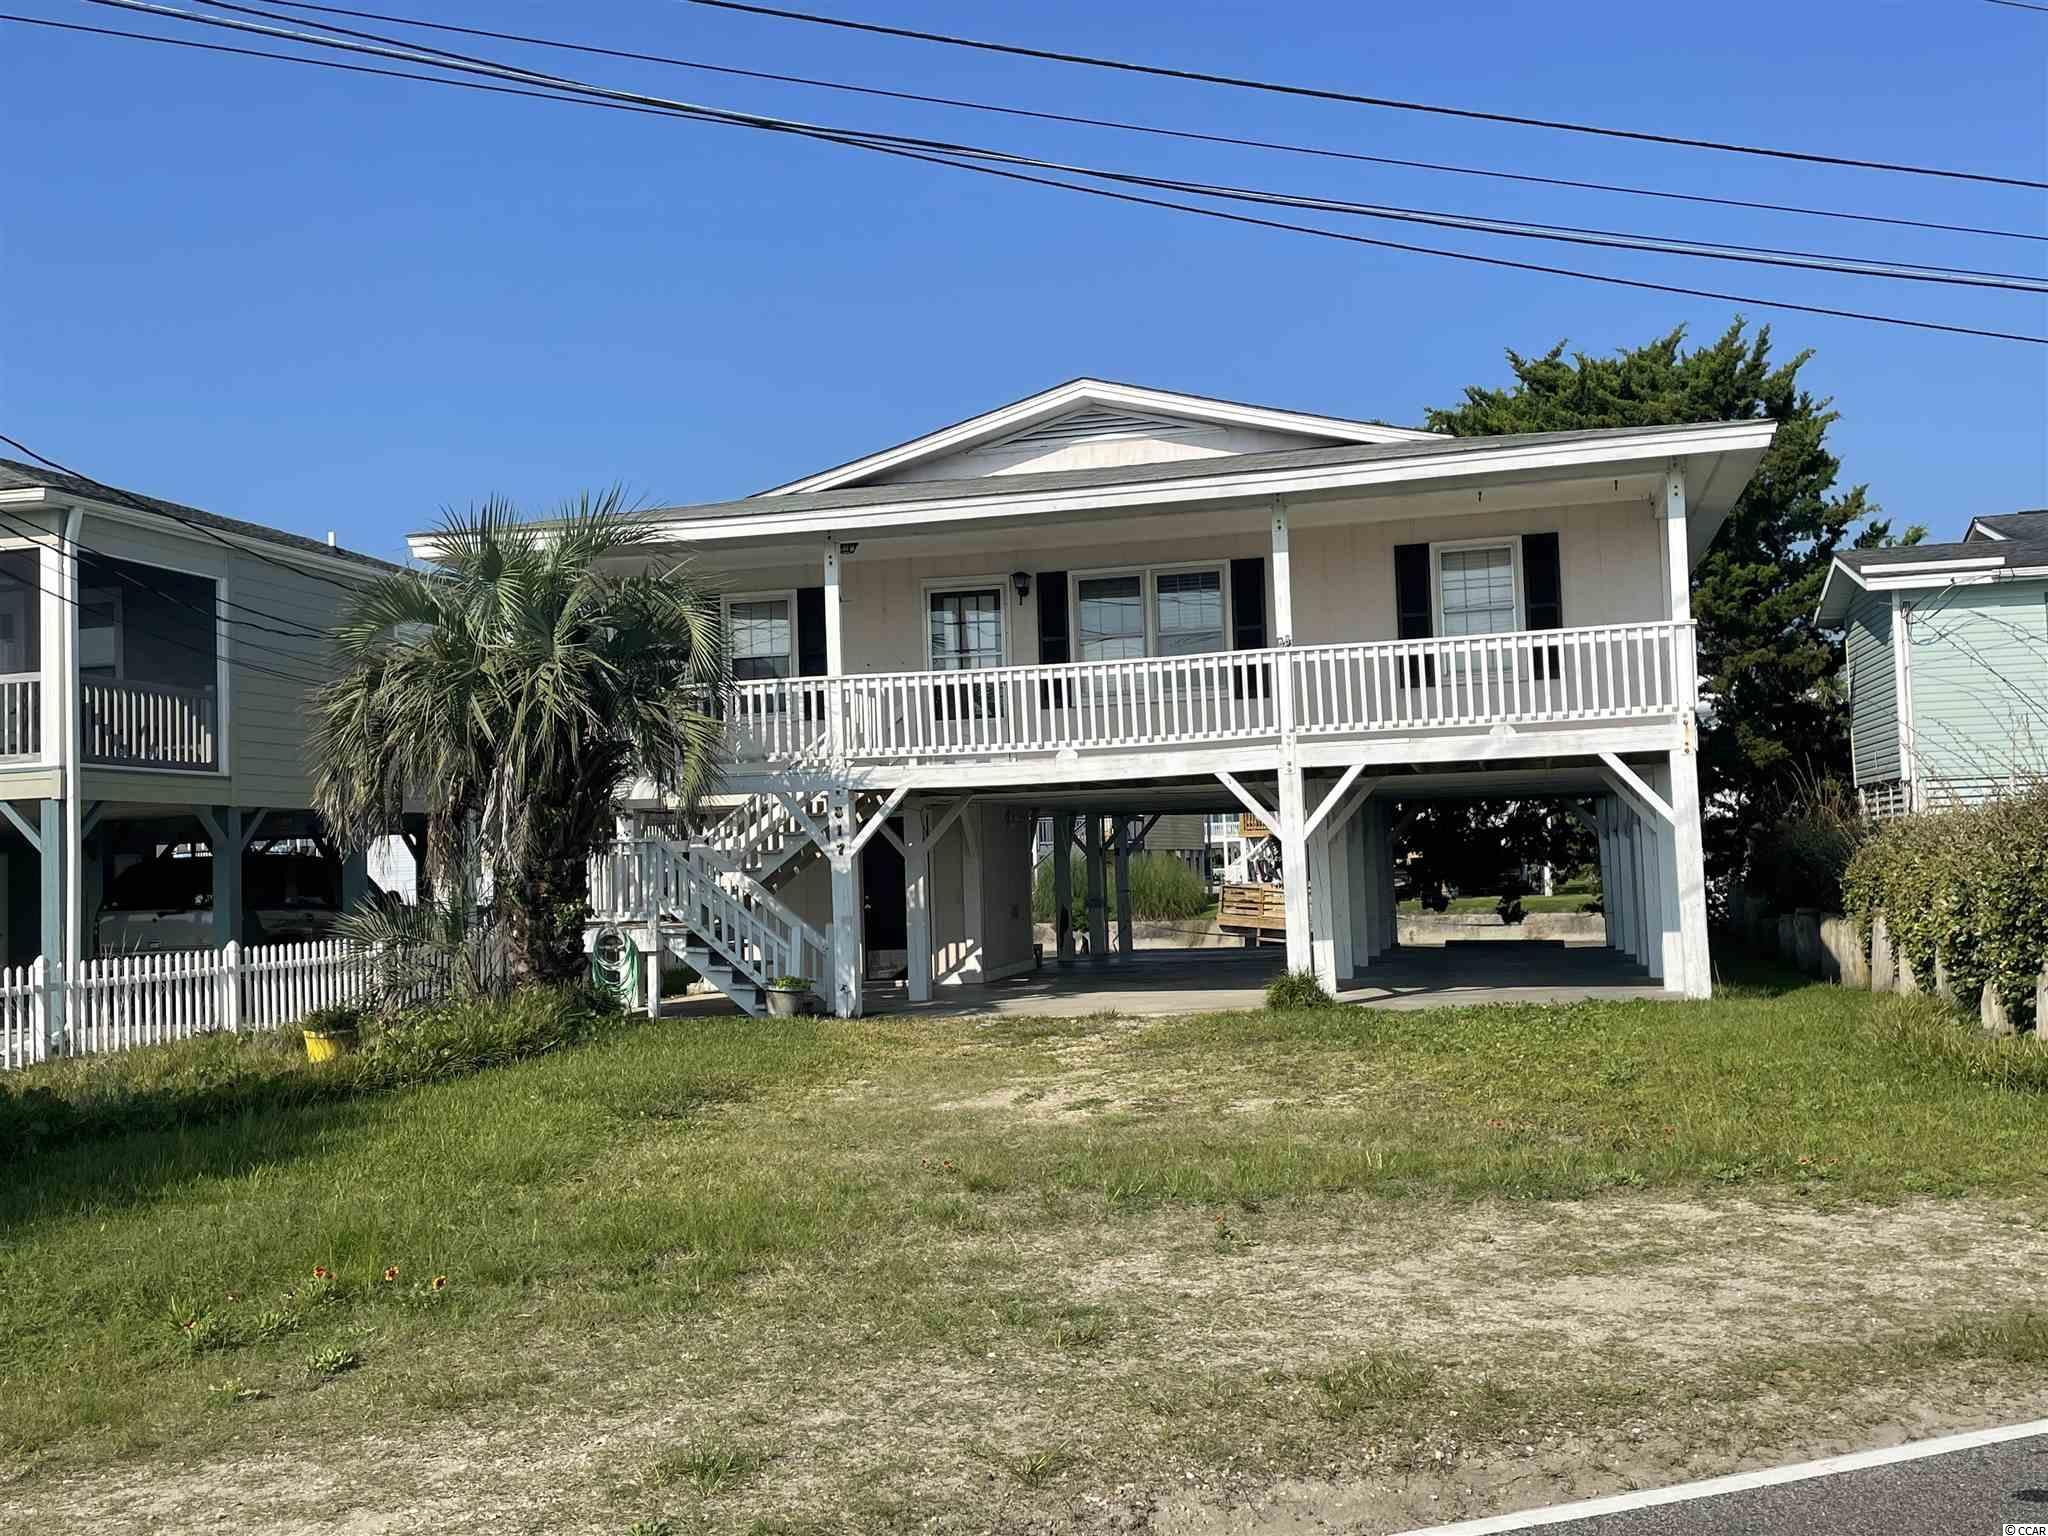 """Welcome to Cherry Gove.  This is a one of a kind location in the very desirable area of Cherry Grove.    Once you are here at your 4br/2ba home at the beach, you will be able to enjoy water views off of your back deck, or sit on your front porch and take in panoramic views of the Cherry Gove marsh.     There aren't many opportunities that come along where you have water in front and behind a home.     This is an opportunity for you to come in an make this home your own.    This home is being sold """"as is"""" and the current owner welcomes all inspections.    You will be able to take a short walk to the best beaches along the North Myrtle Beach coastline, a short drive to grocery stores, restaurants, and shopping, all while being able to take in gorgeous scenery.   If you are looking for the perfect place to call home here at the beach, and make it your own, this is it."""